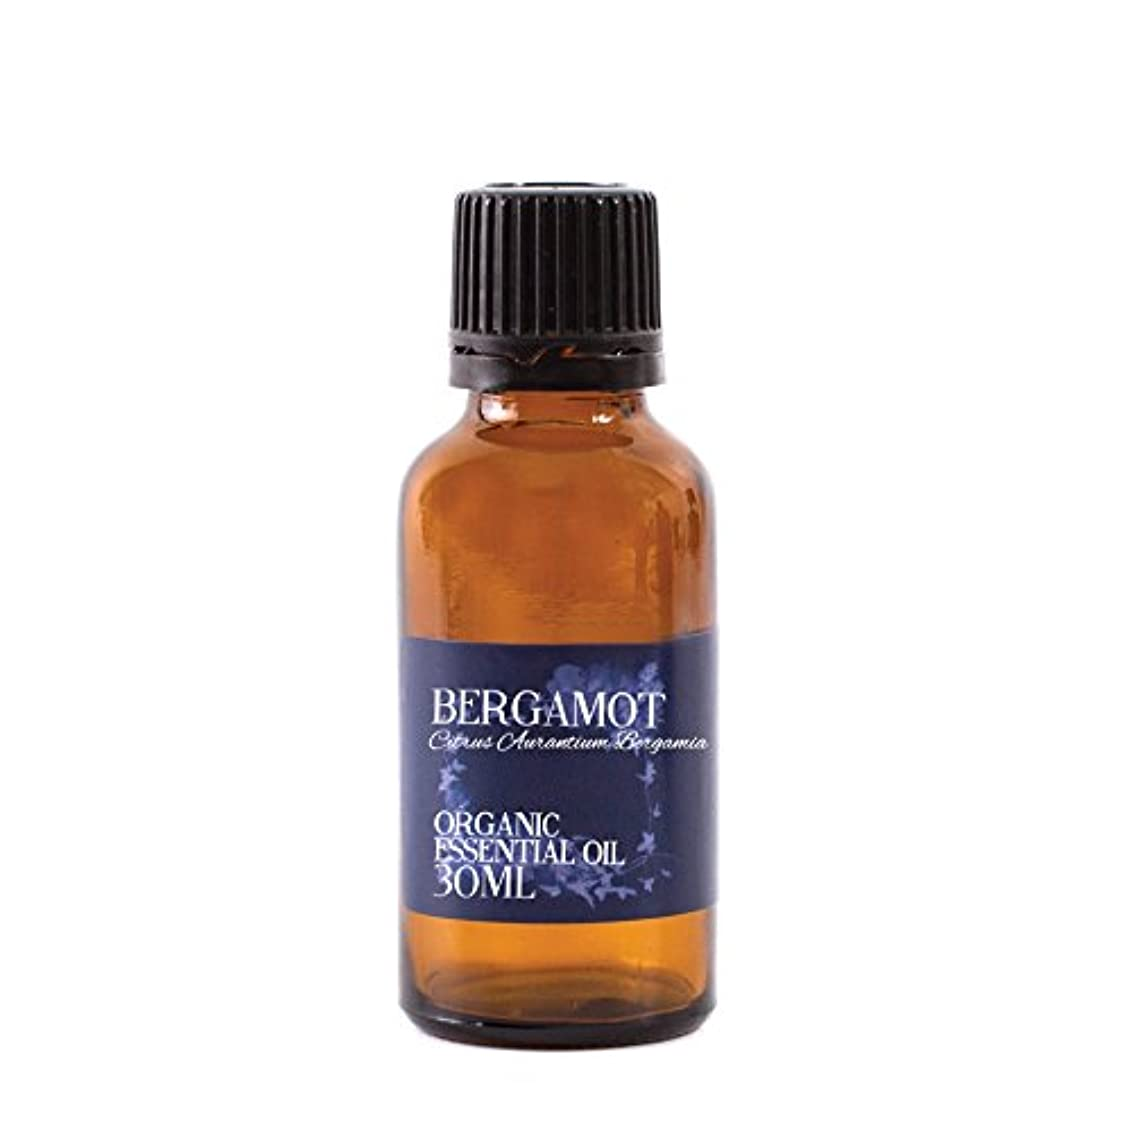 Mystic Moments | Bergamot Organic Essential Oil - 30ml - 100% Pure